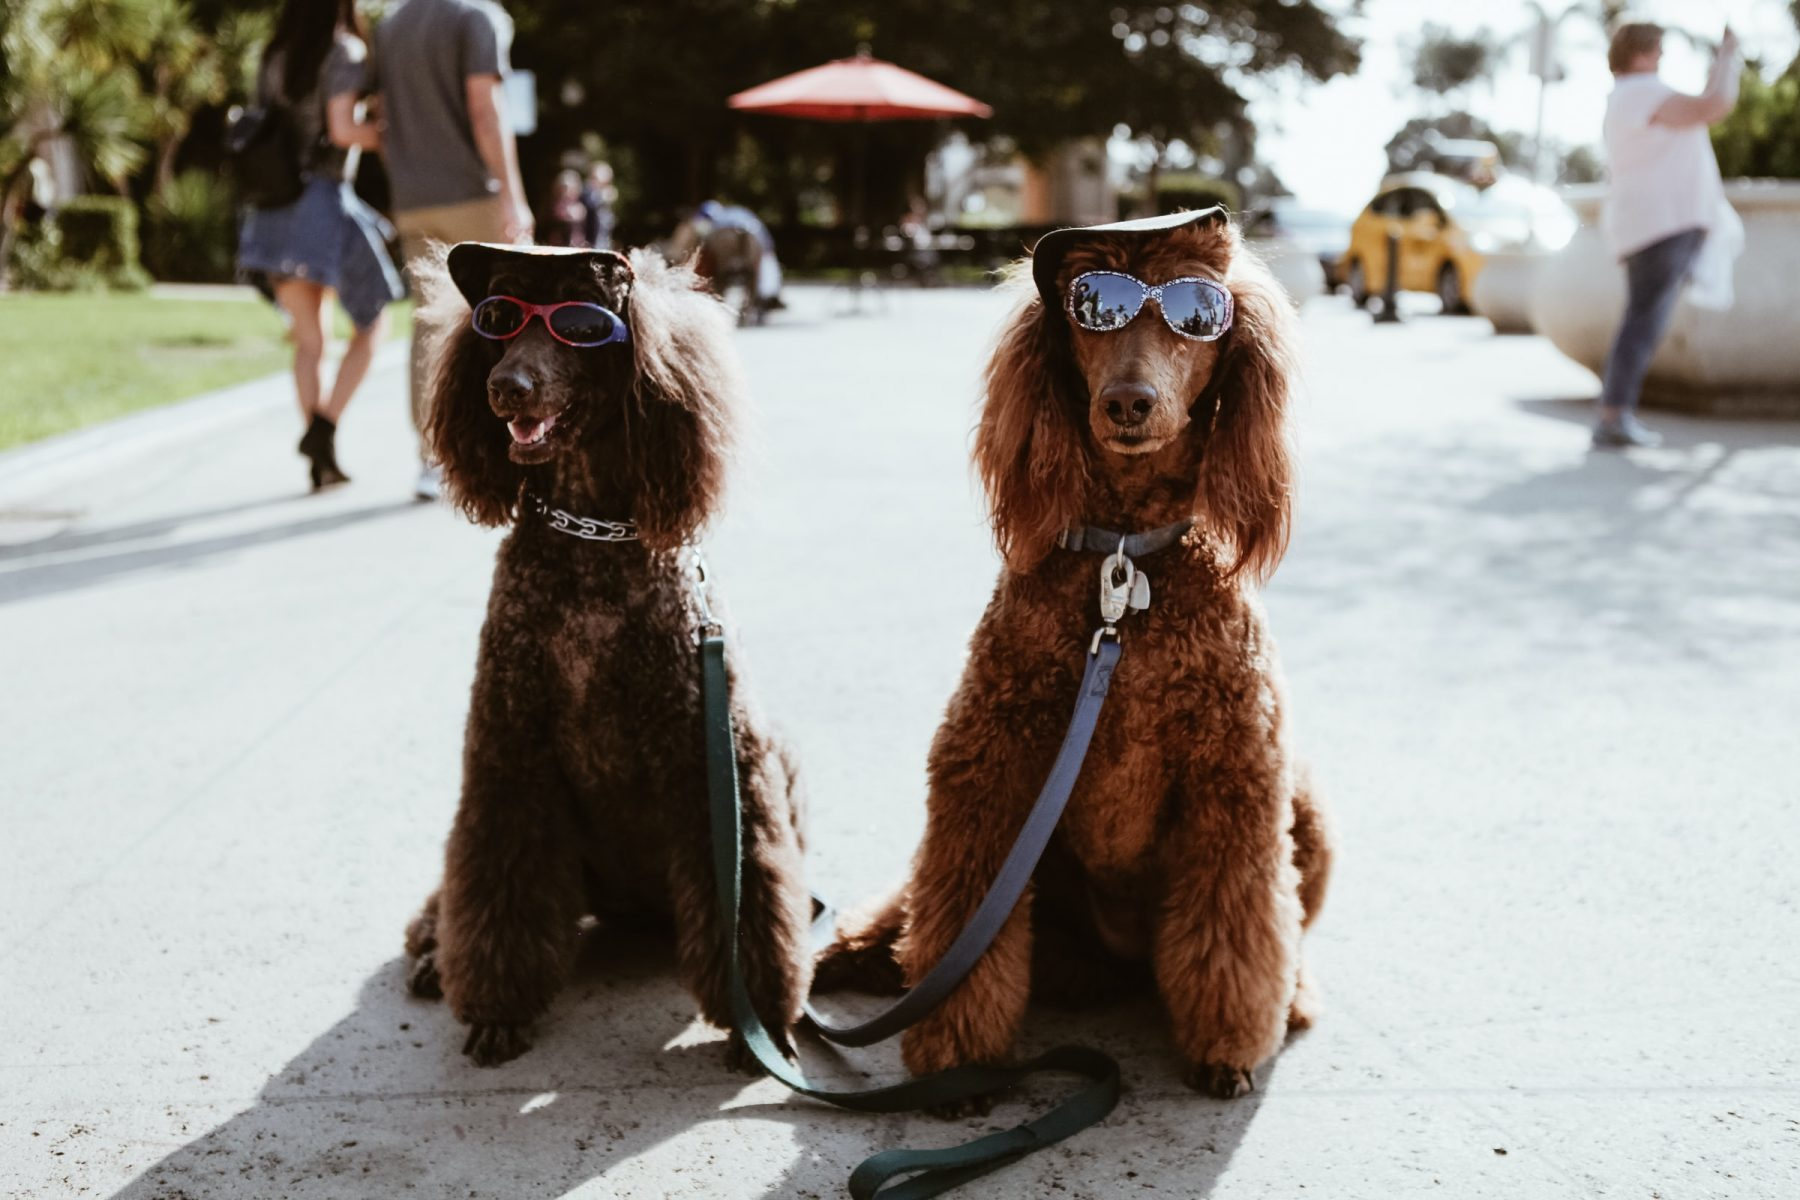 In an article about the what animal are you Instagram trend, a photo of two poodles in sunglasses